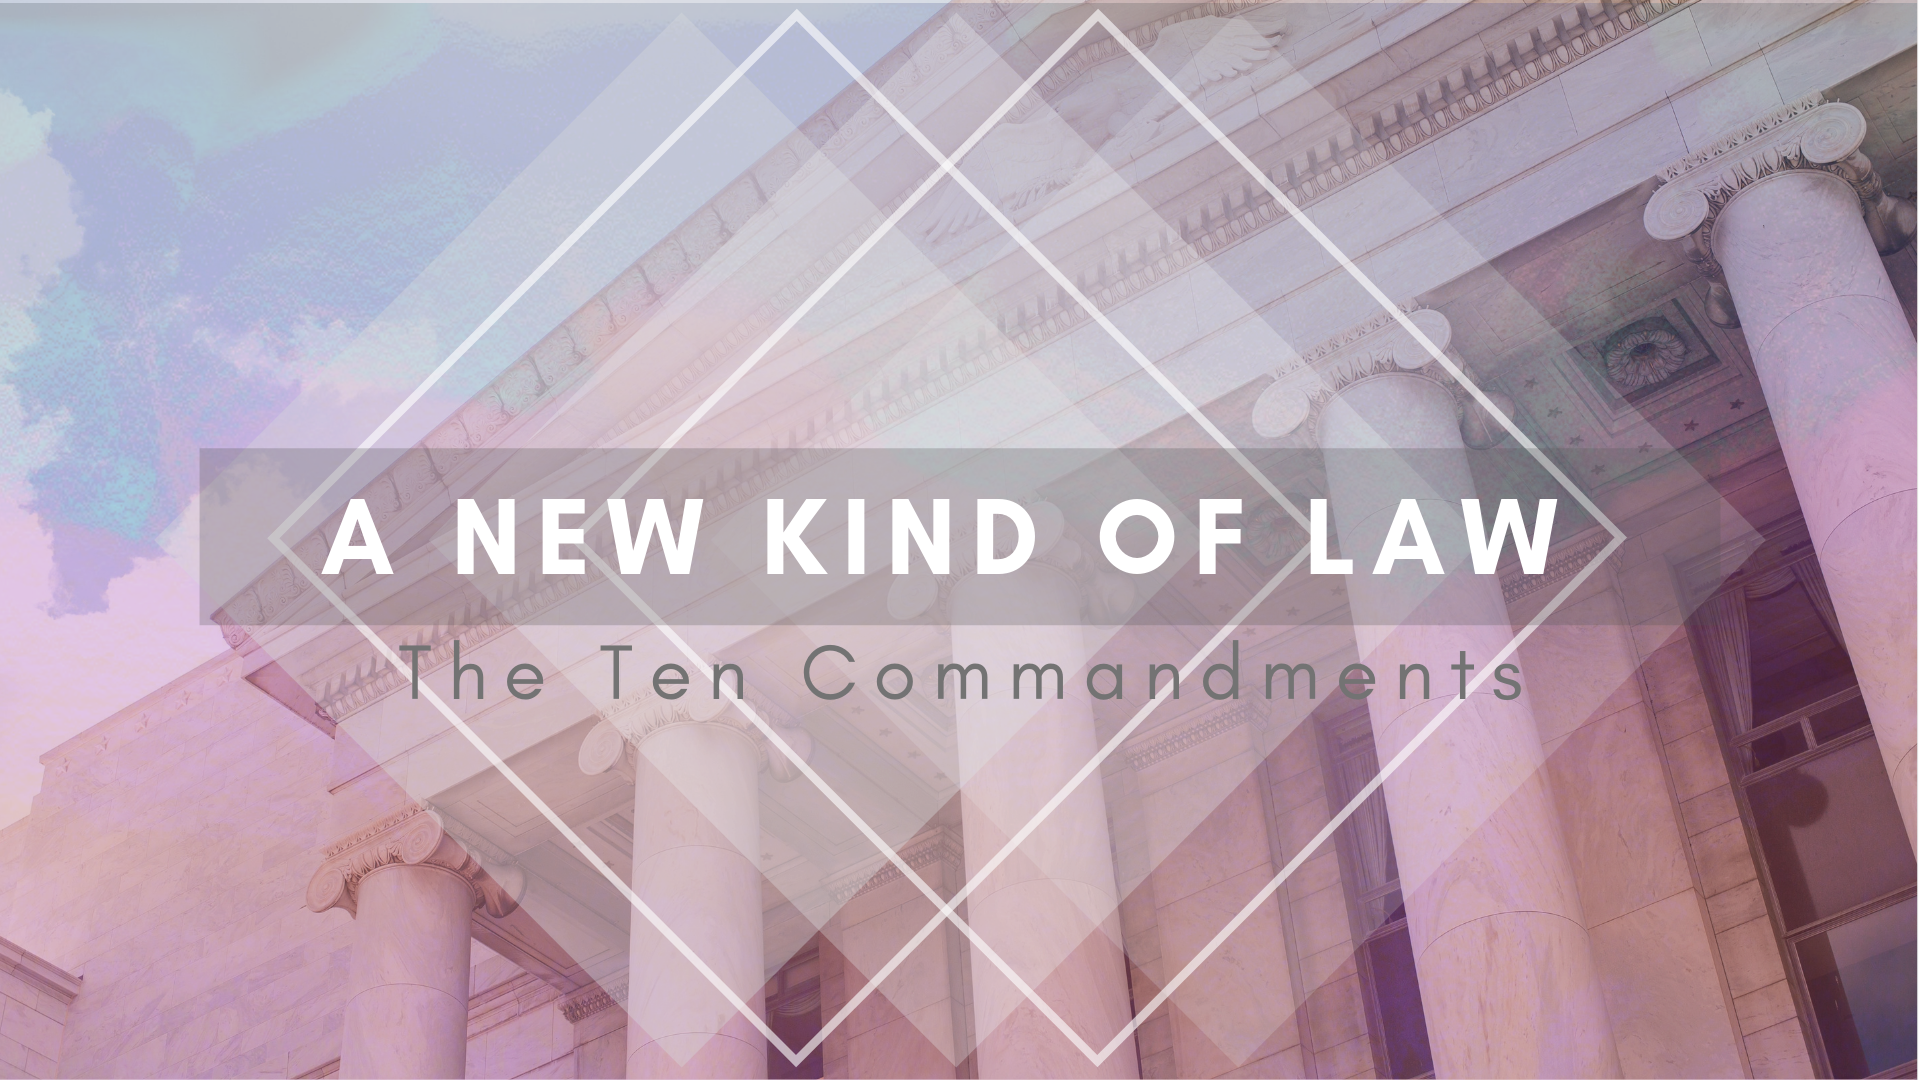 We live in a society that is not too fond of rules; let alone universal rules for how to live. It's no wonder then that Christians look at the Ten Commandments resentfully and/or unattractively. But the truth is: following the Law will lead you to the greatest flourishing possible. Follow along with us as we teach  A New Kind of Law.